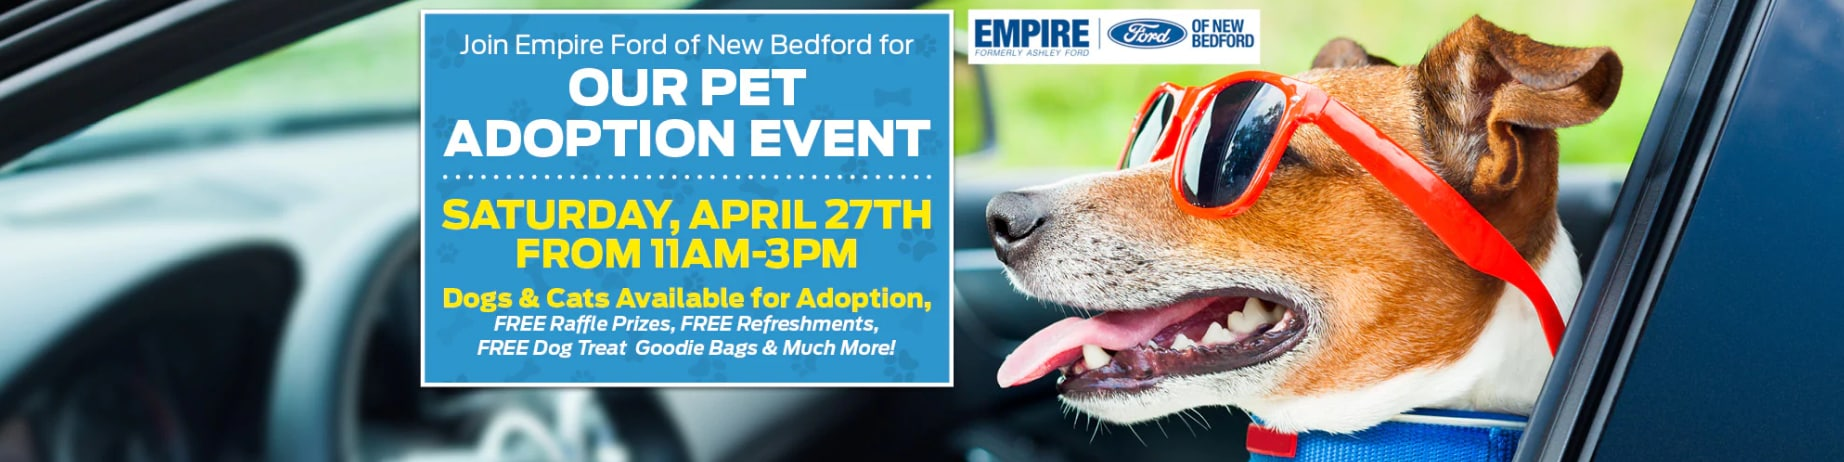 EMPIRE FORD to sponsor a Pet Adoption Event | Empire Ford of New Bedford